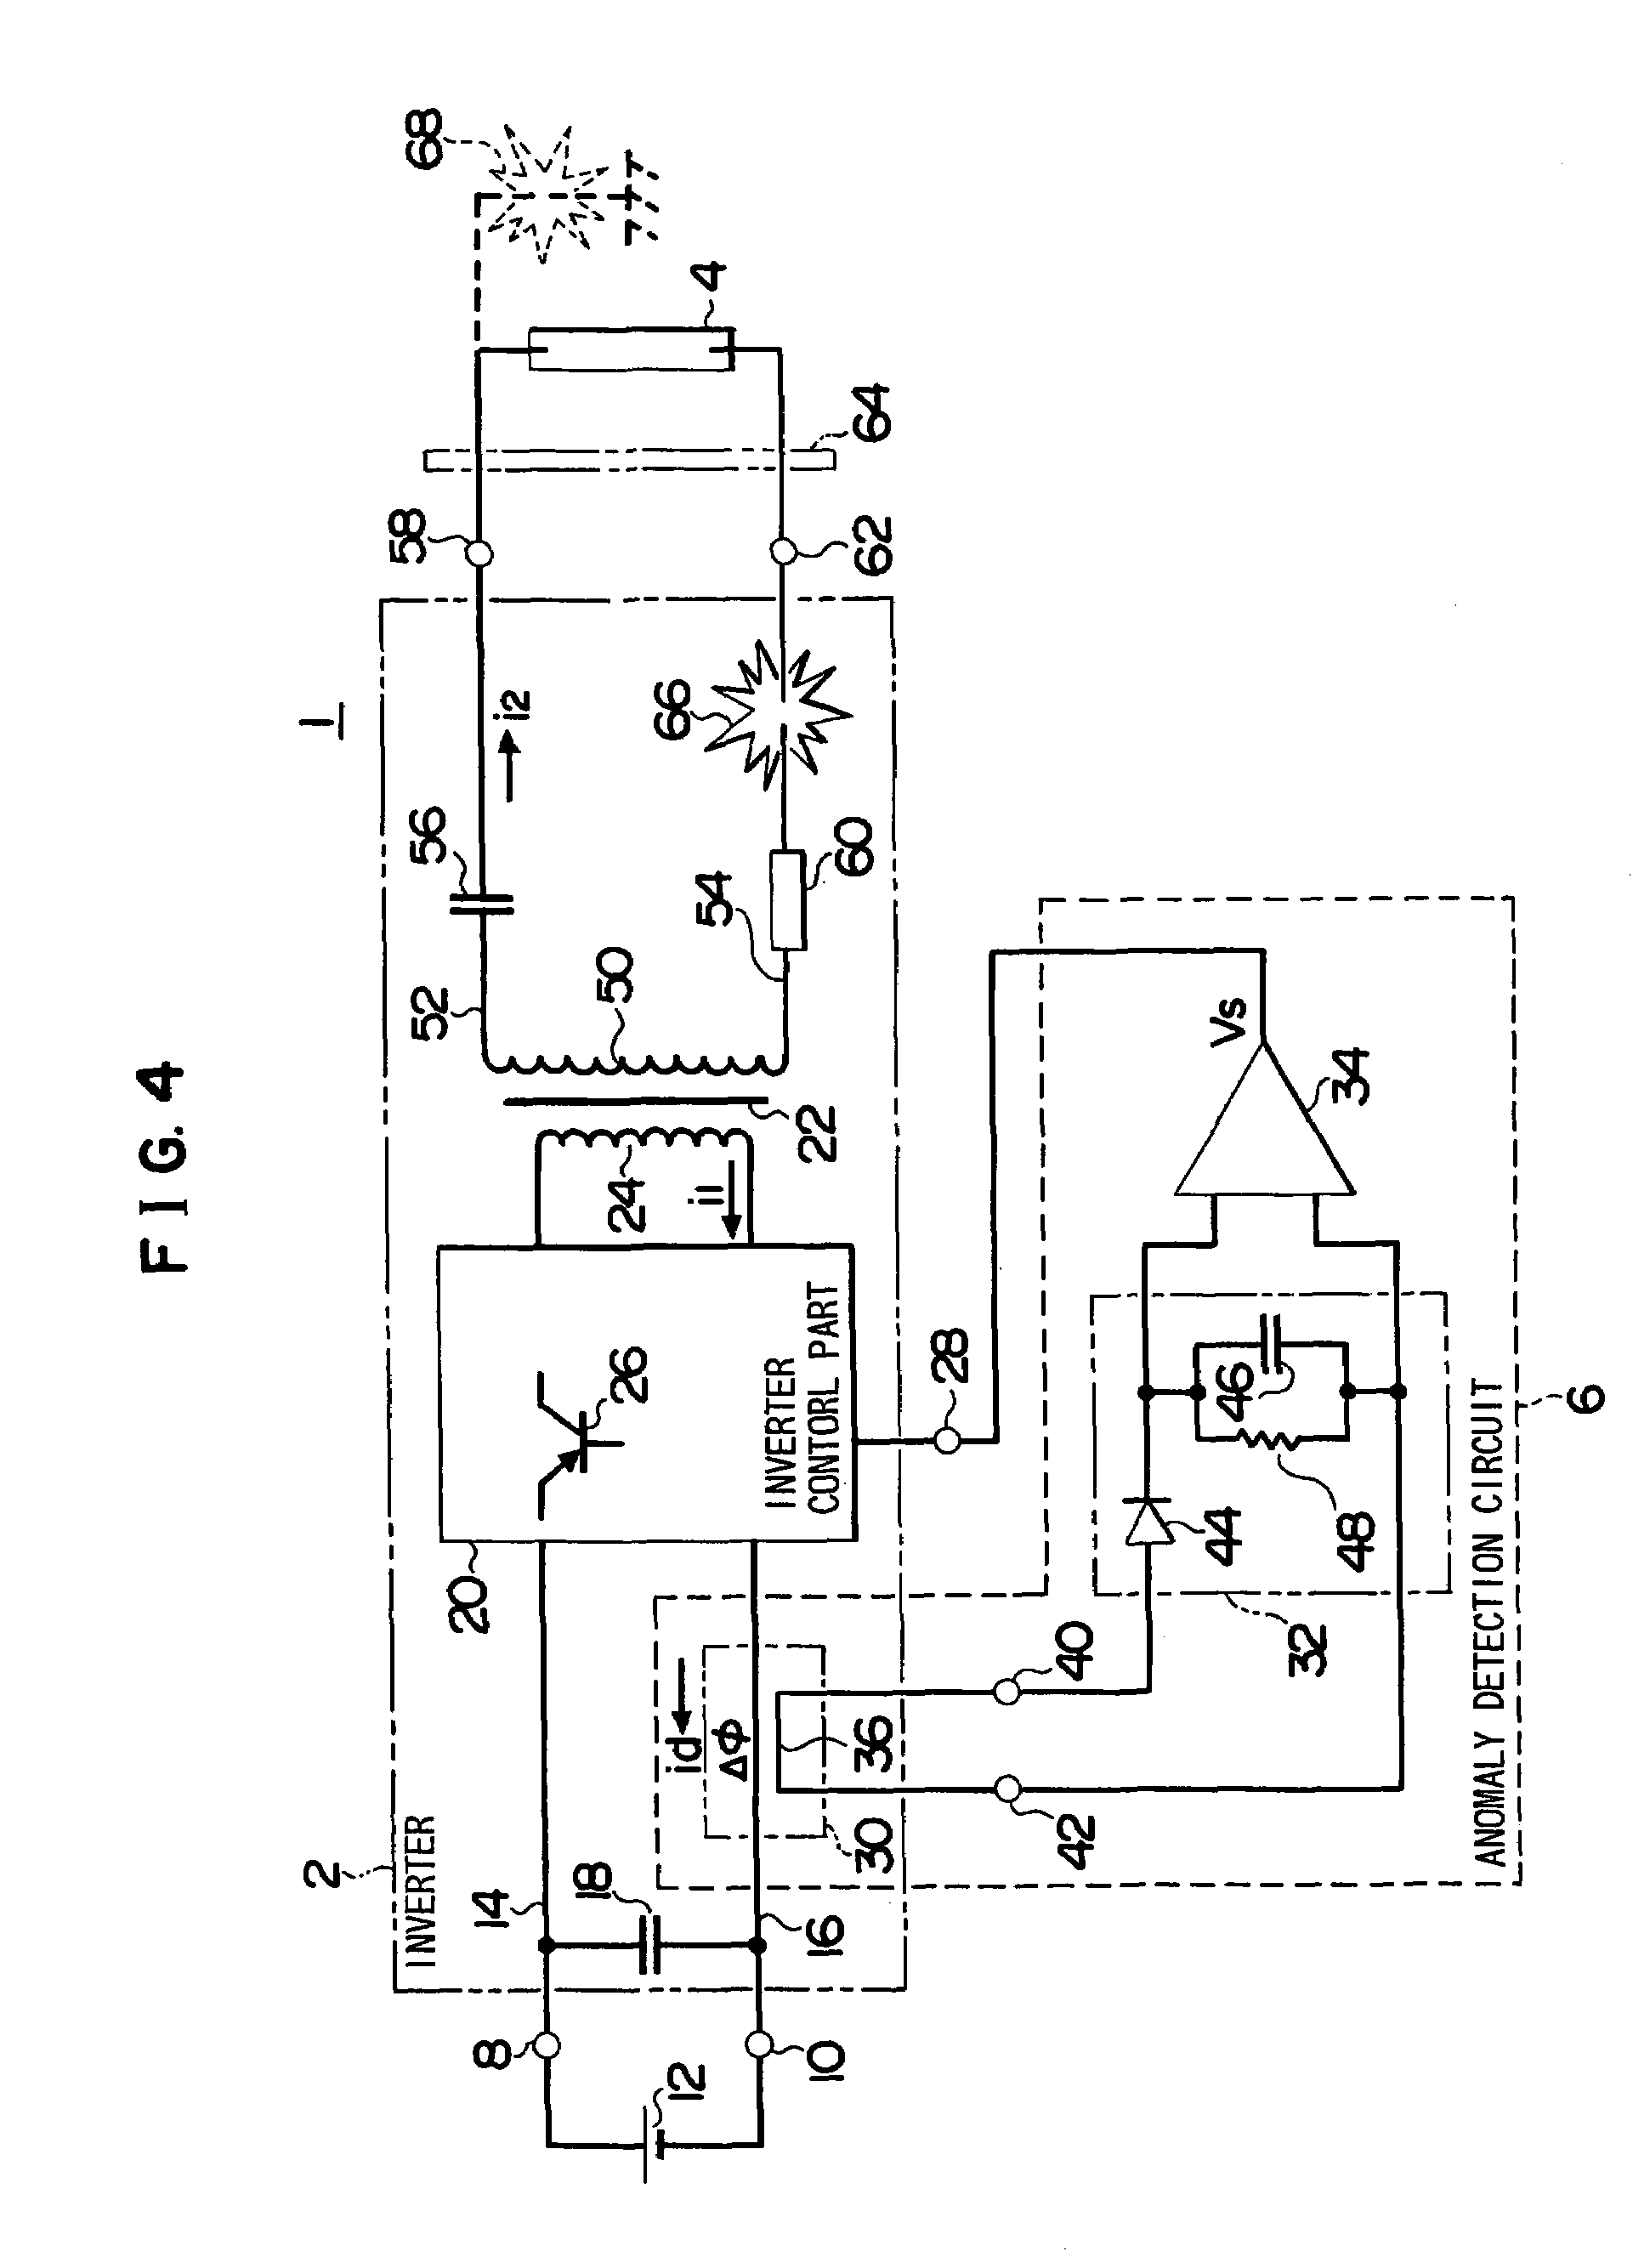 Patent Us7598748 Inverter System Google Patents S15 Toshiba Wiring Diagrams Drawing